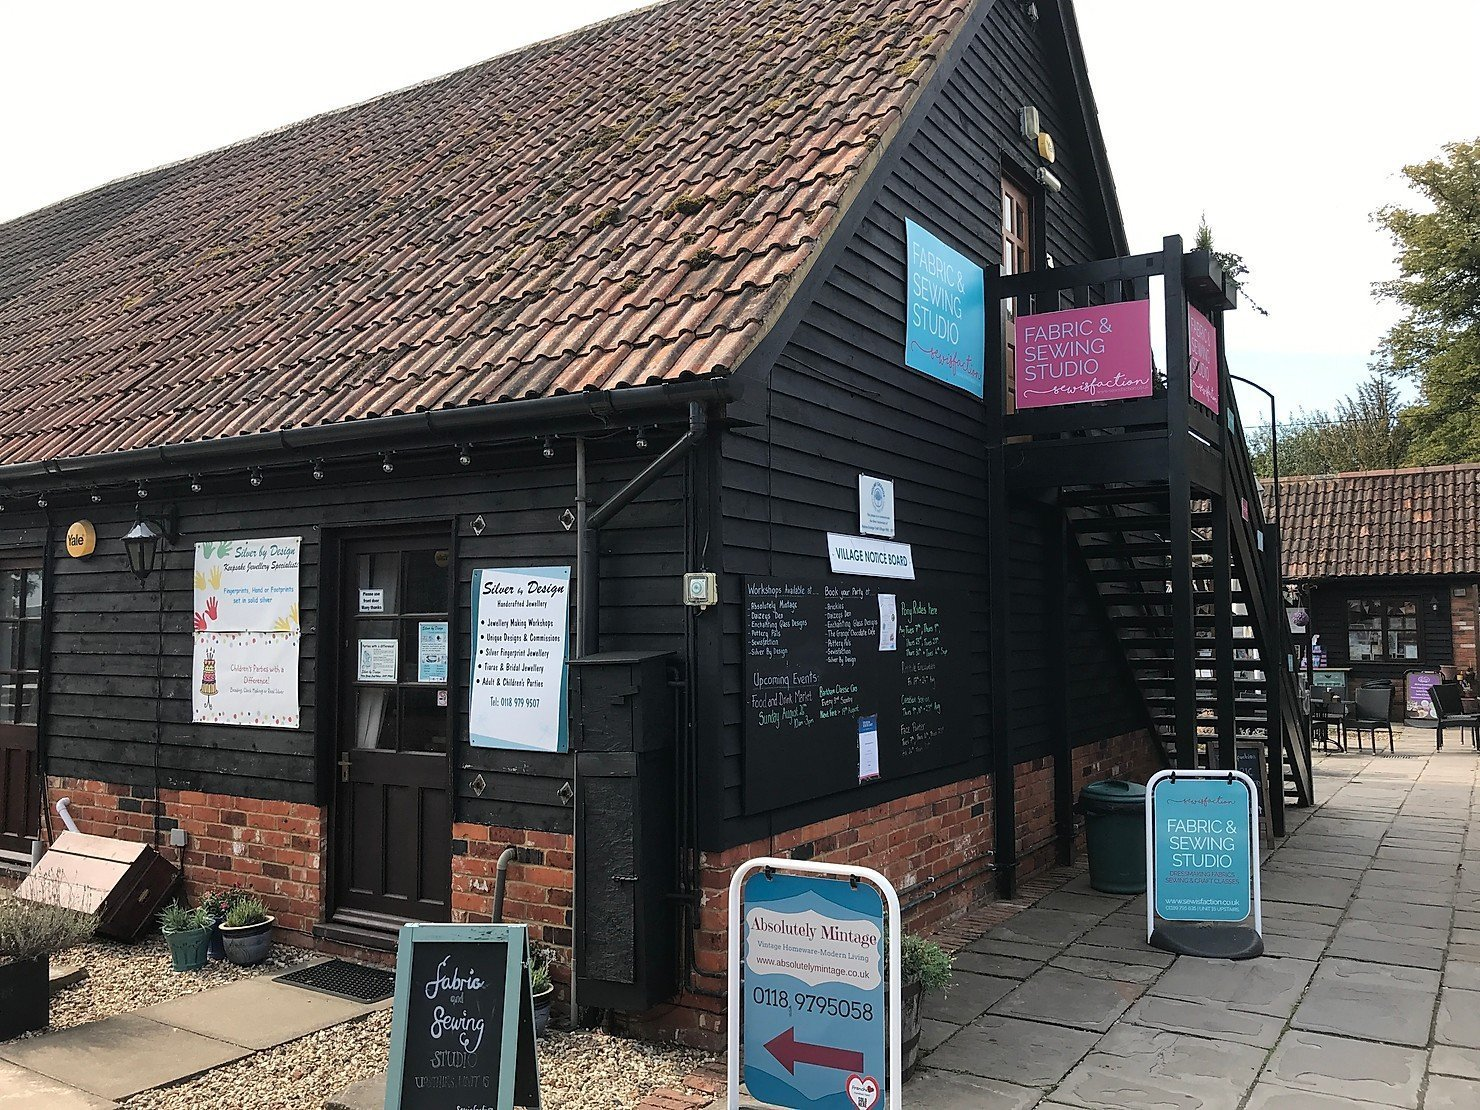 A visit to Holme Grange Craft Village, Wokingham